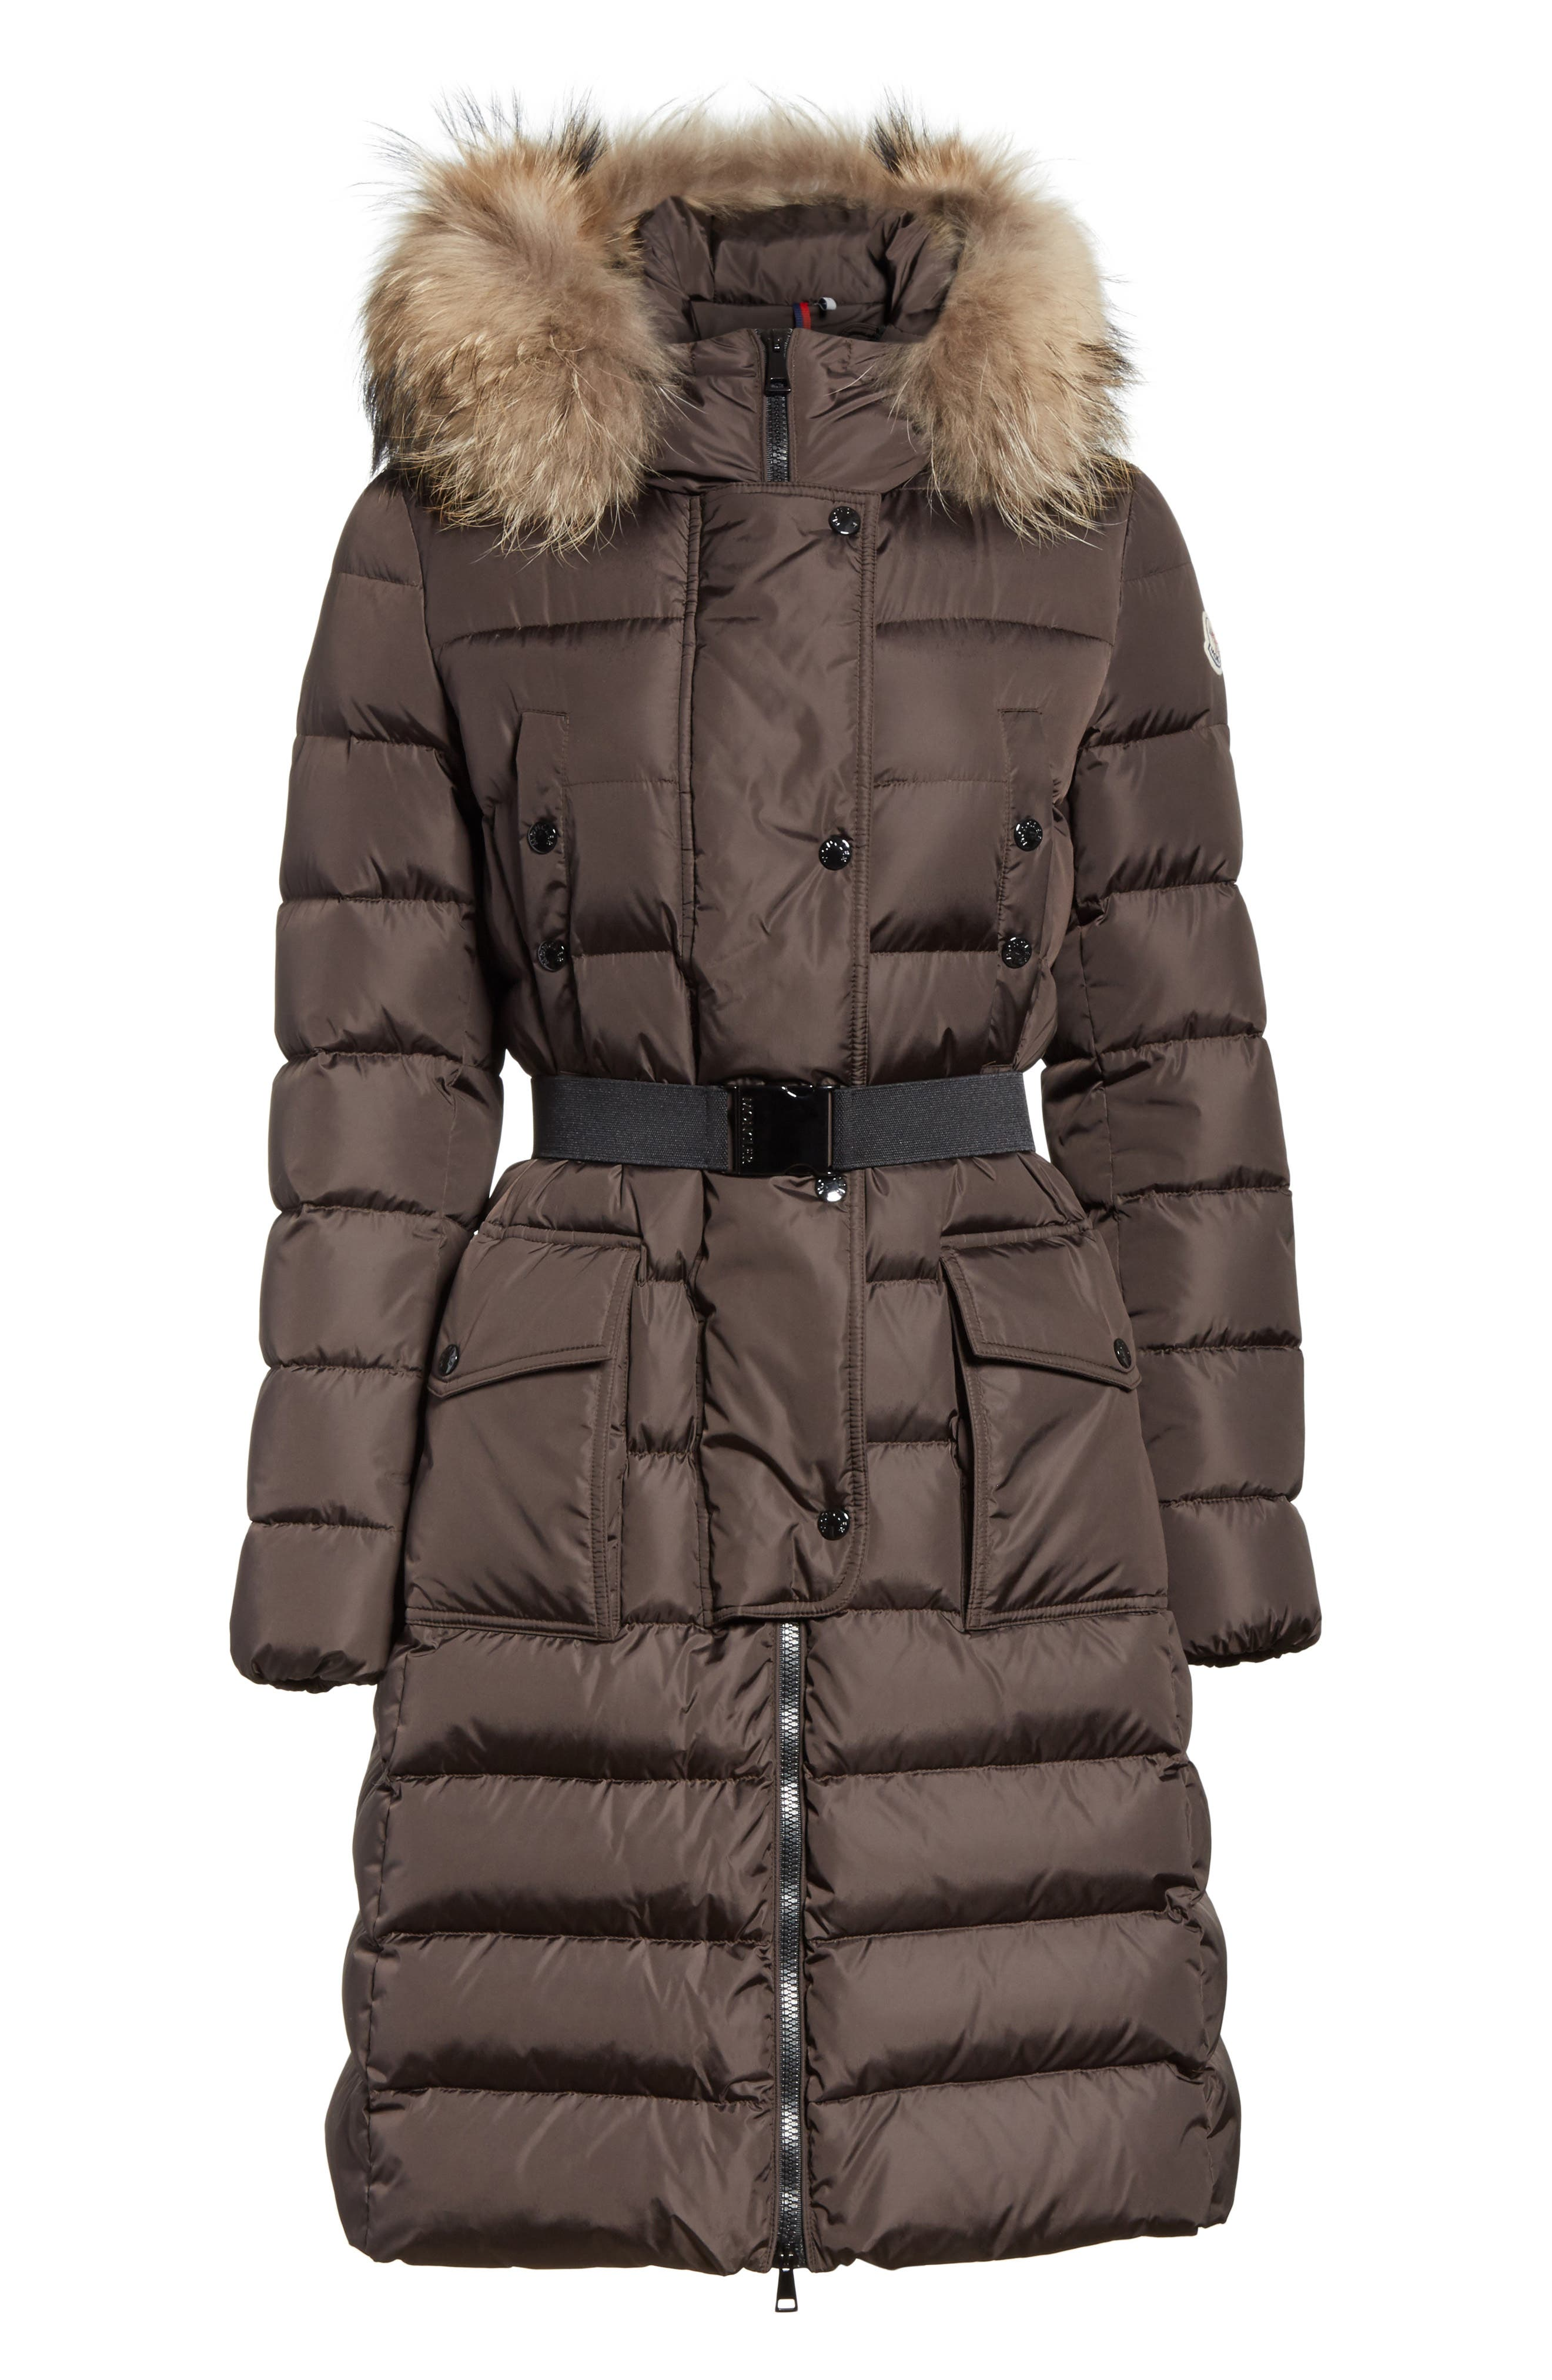 'Khloe' Water Resistant Nylon Down Puffer Parka with Removable Genuine Fox Fur Trim,                             Alternate thumbnail 7, color,                             Brown